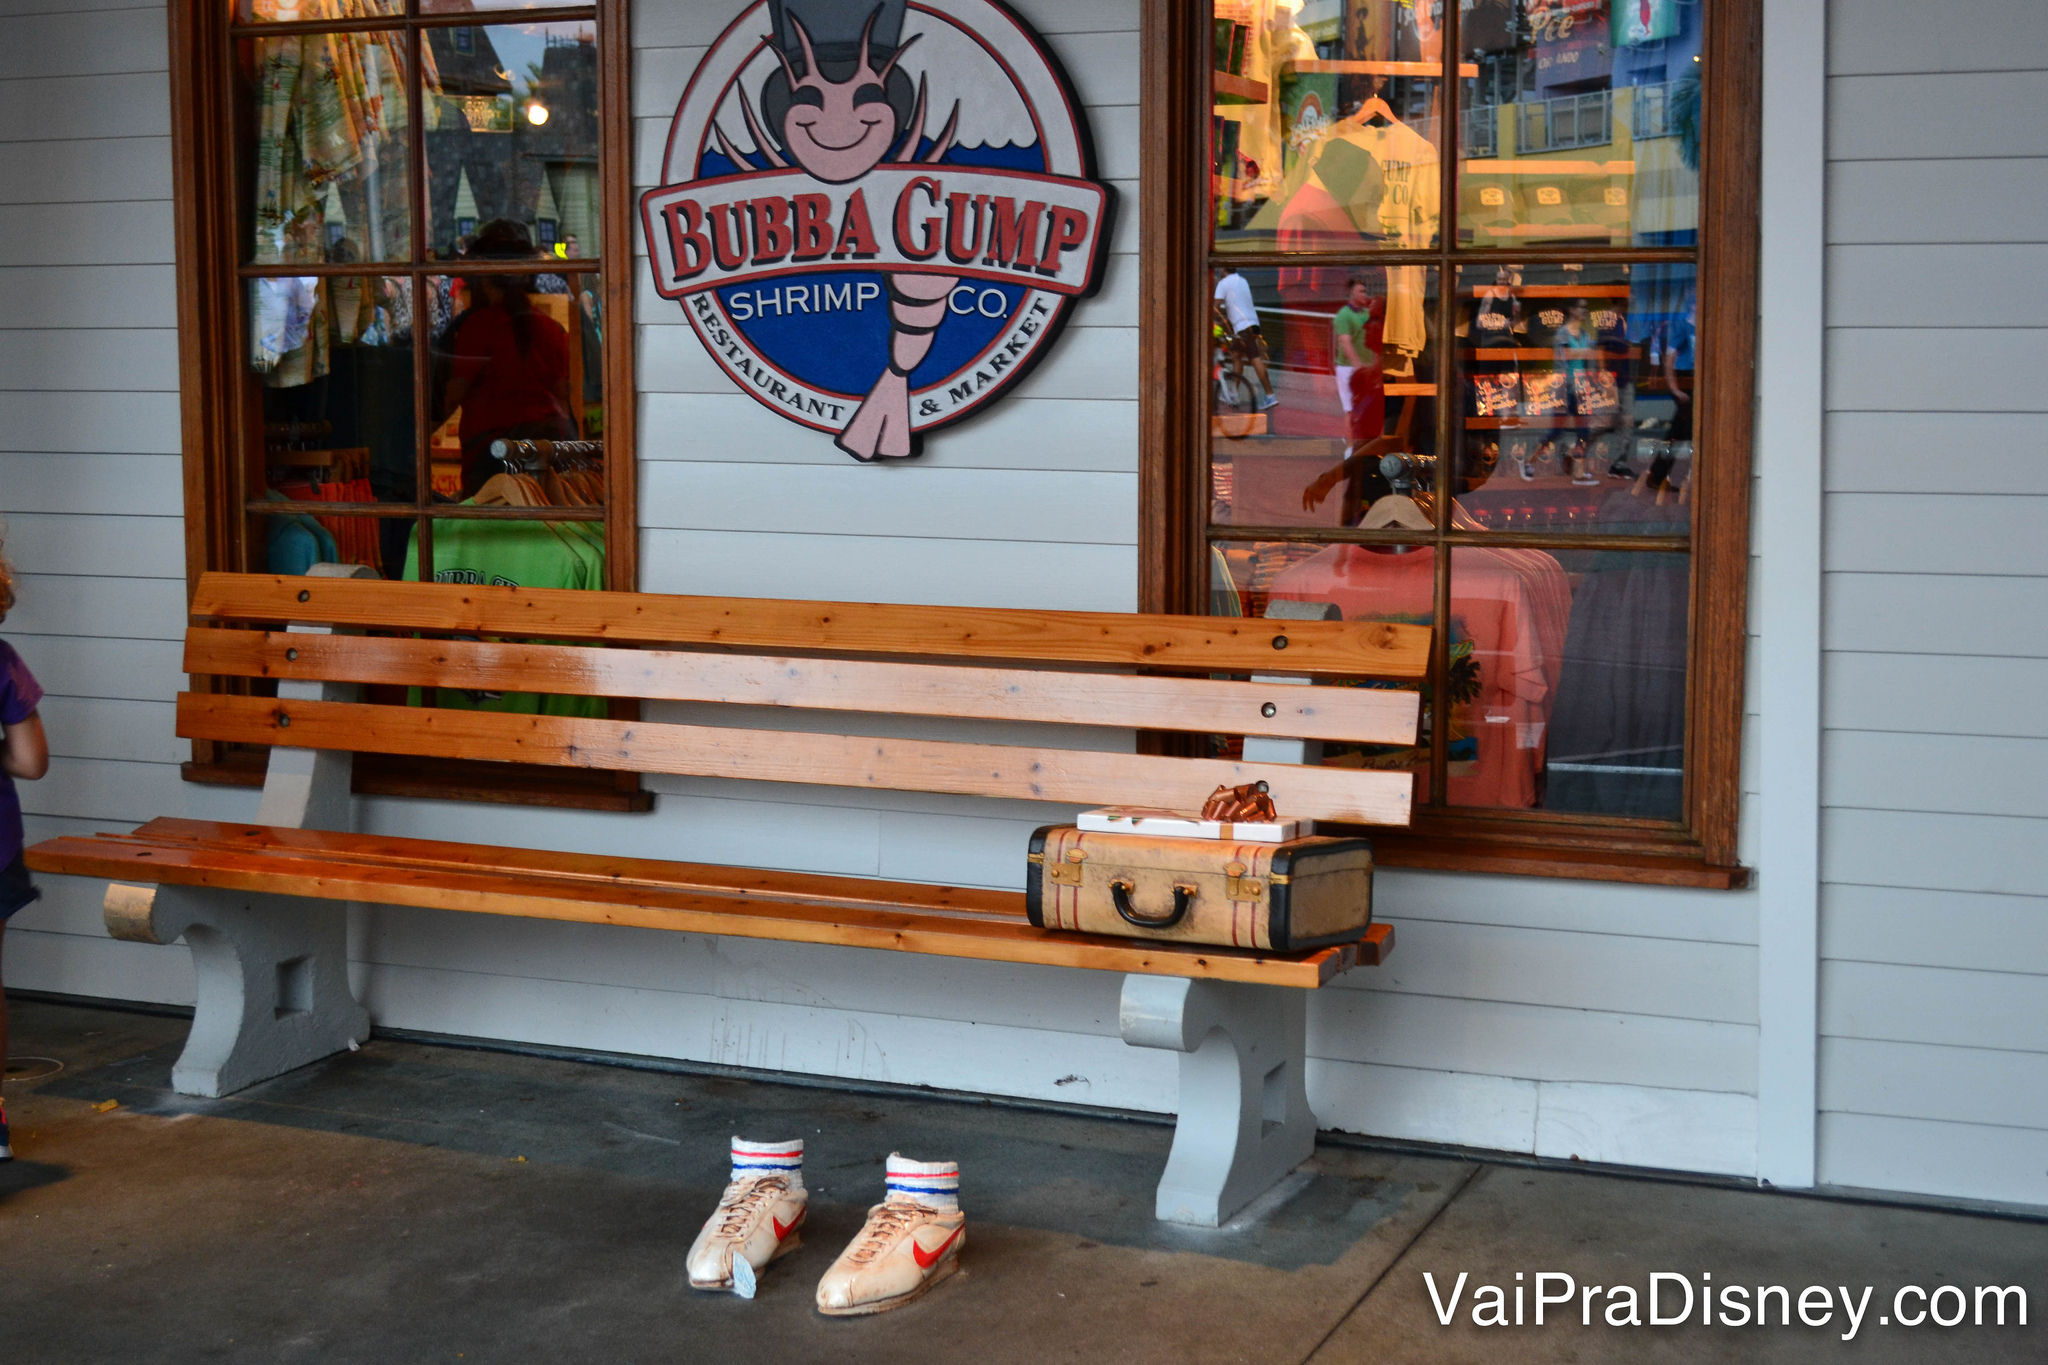 Bubba Gump, o cinematográfico restaurante do filme Forrest Gump, também no City Walk